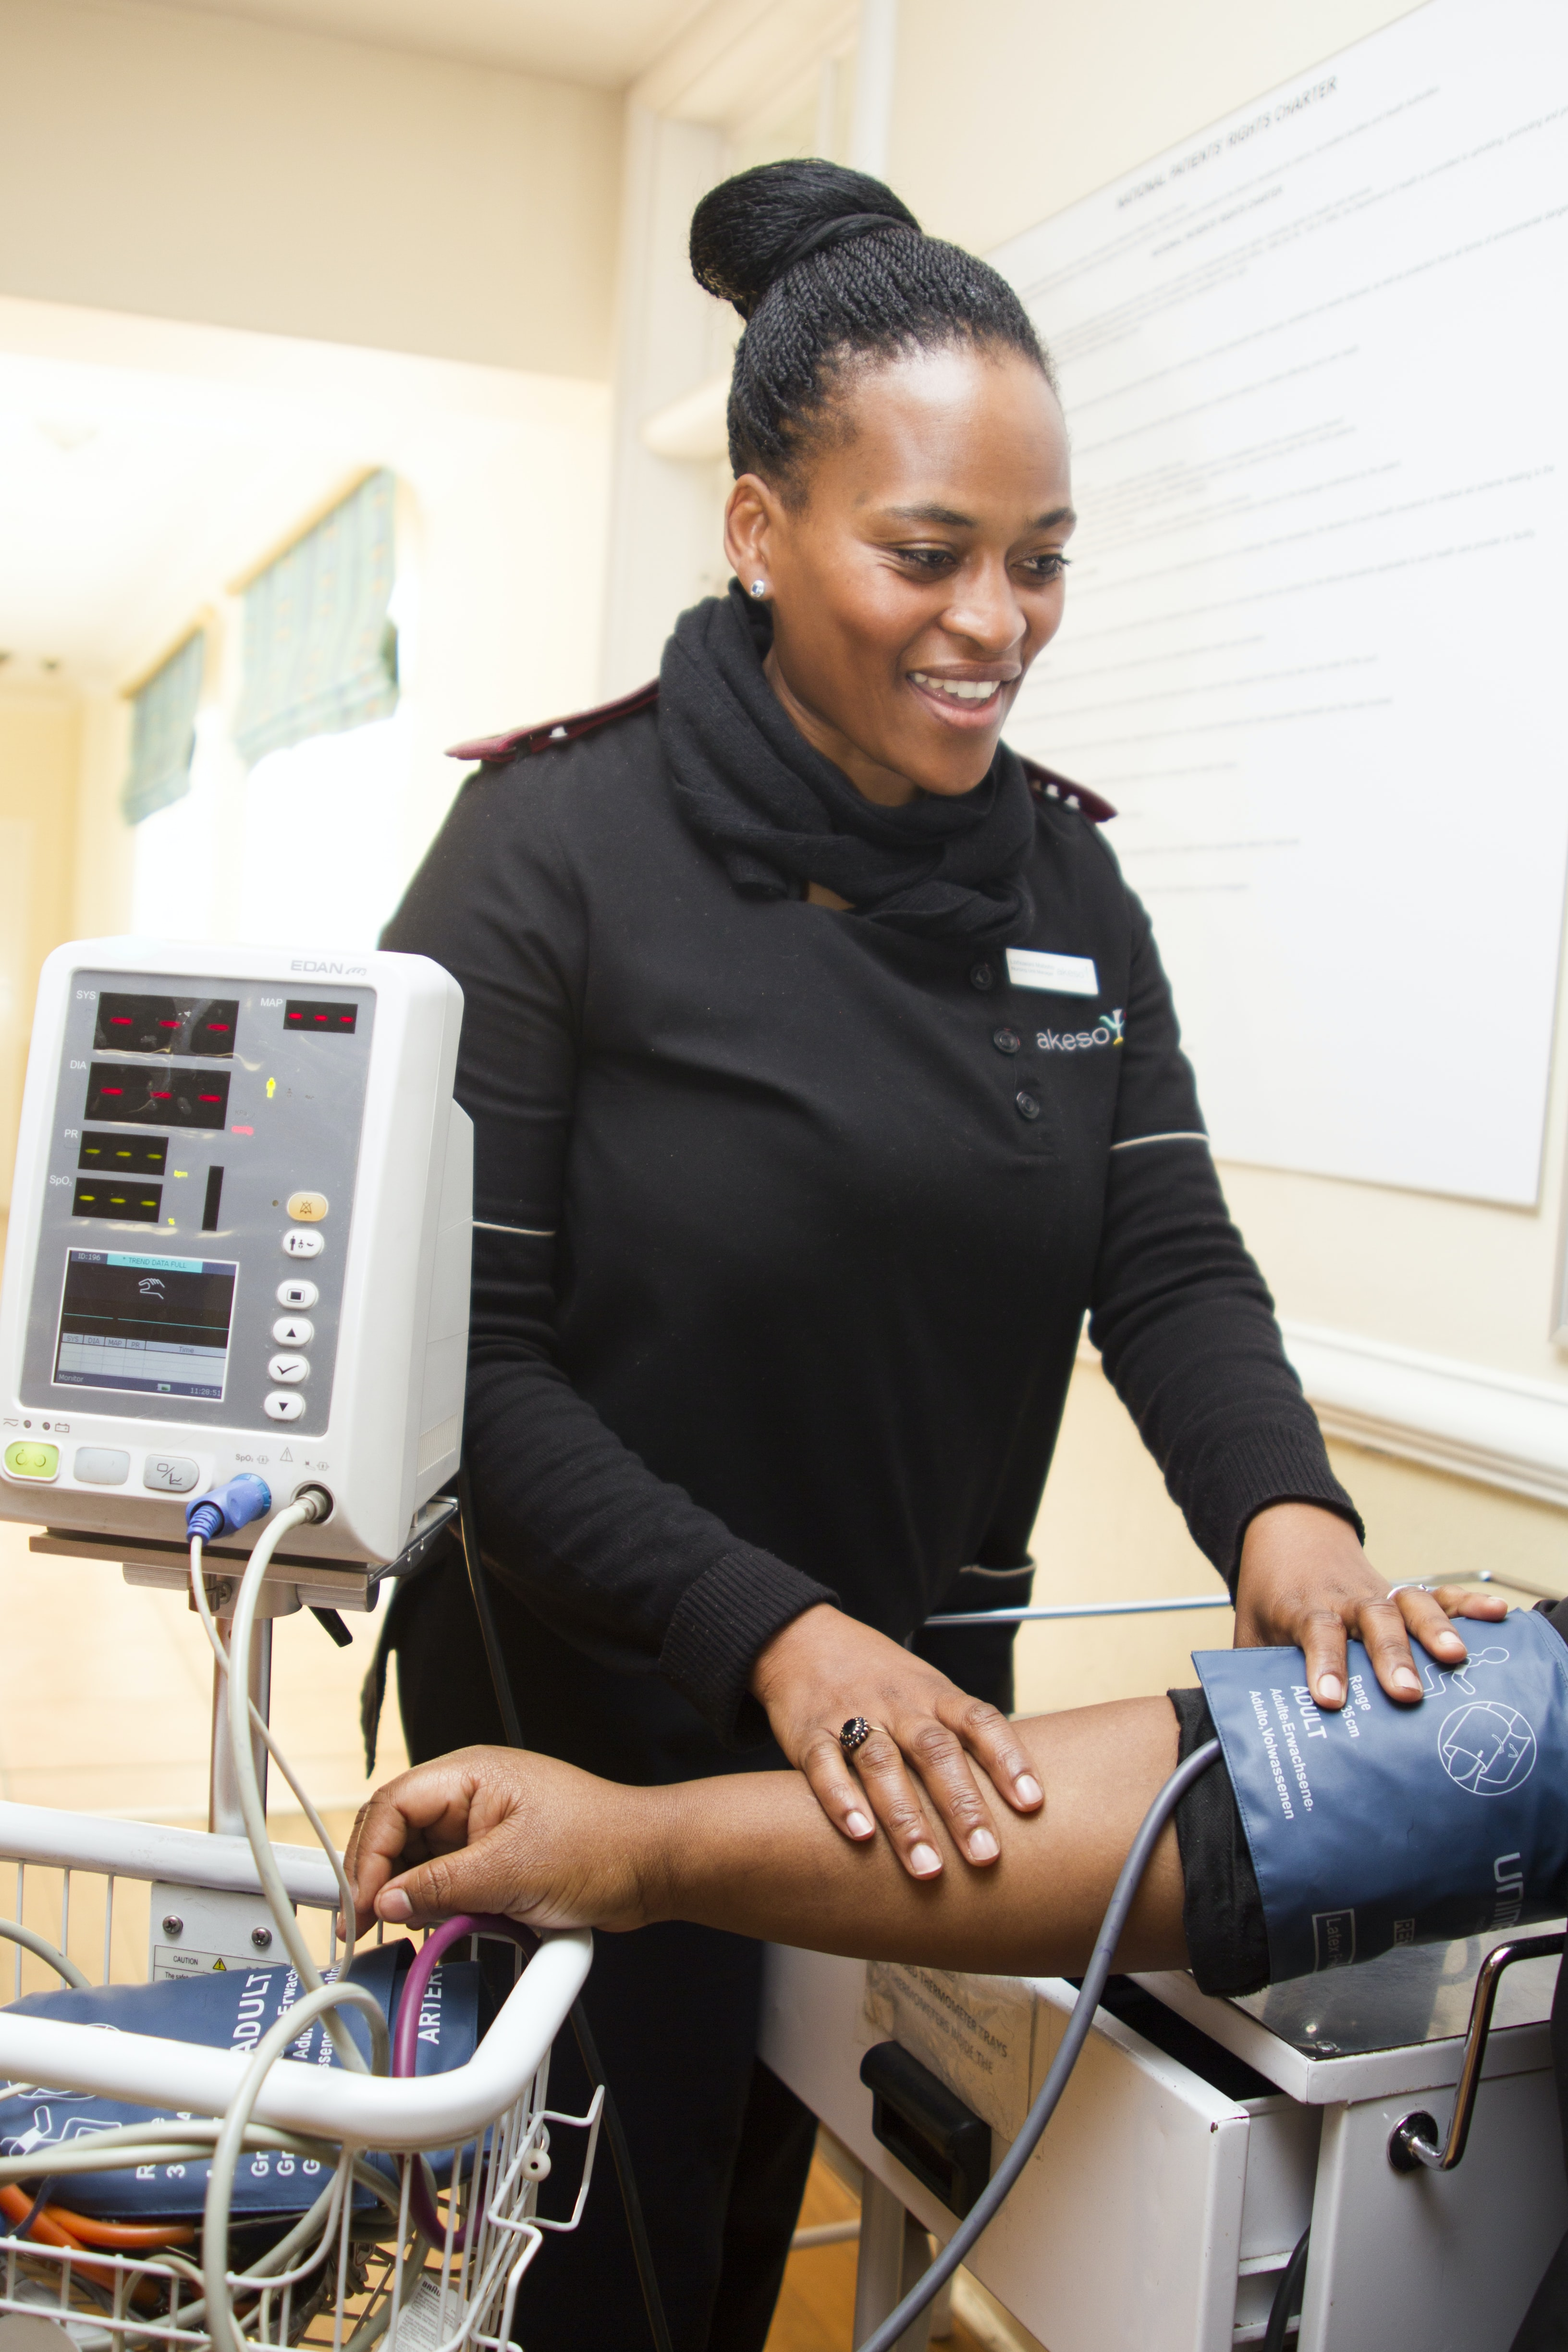 woman aiding a person using blood pressure monitor